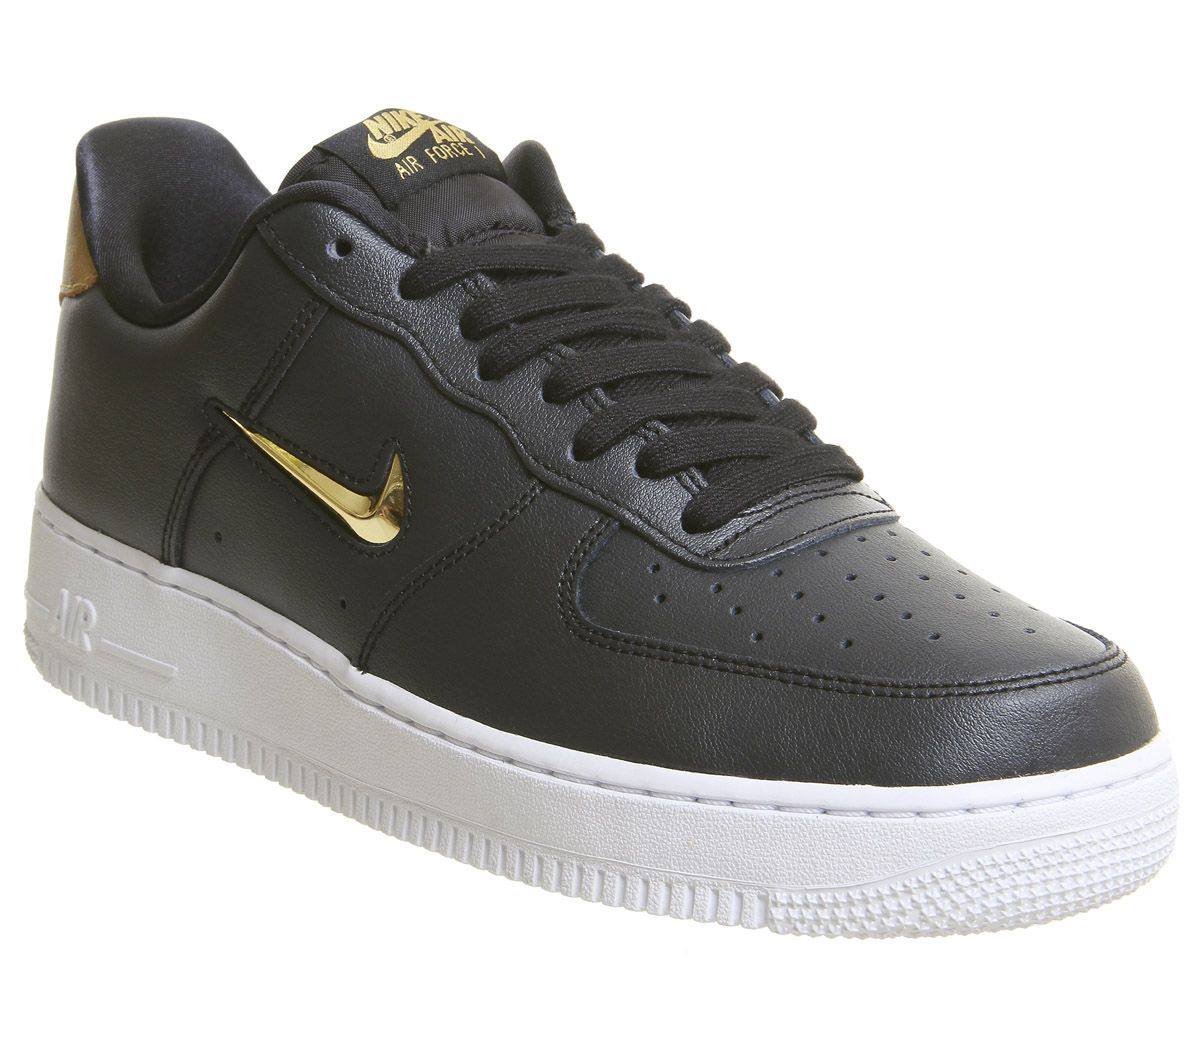 big sale a98d6 7cc31 Nike Air Force 1 Jewel Trainers Black Metallic Gold White - His trainers